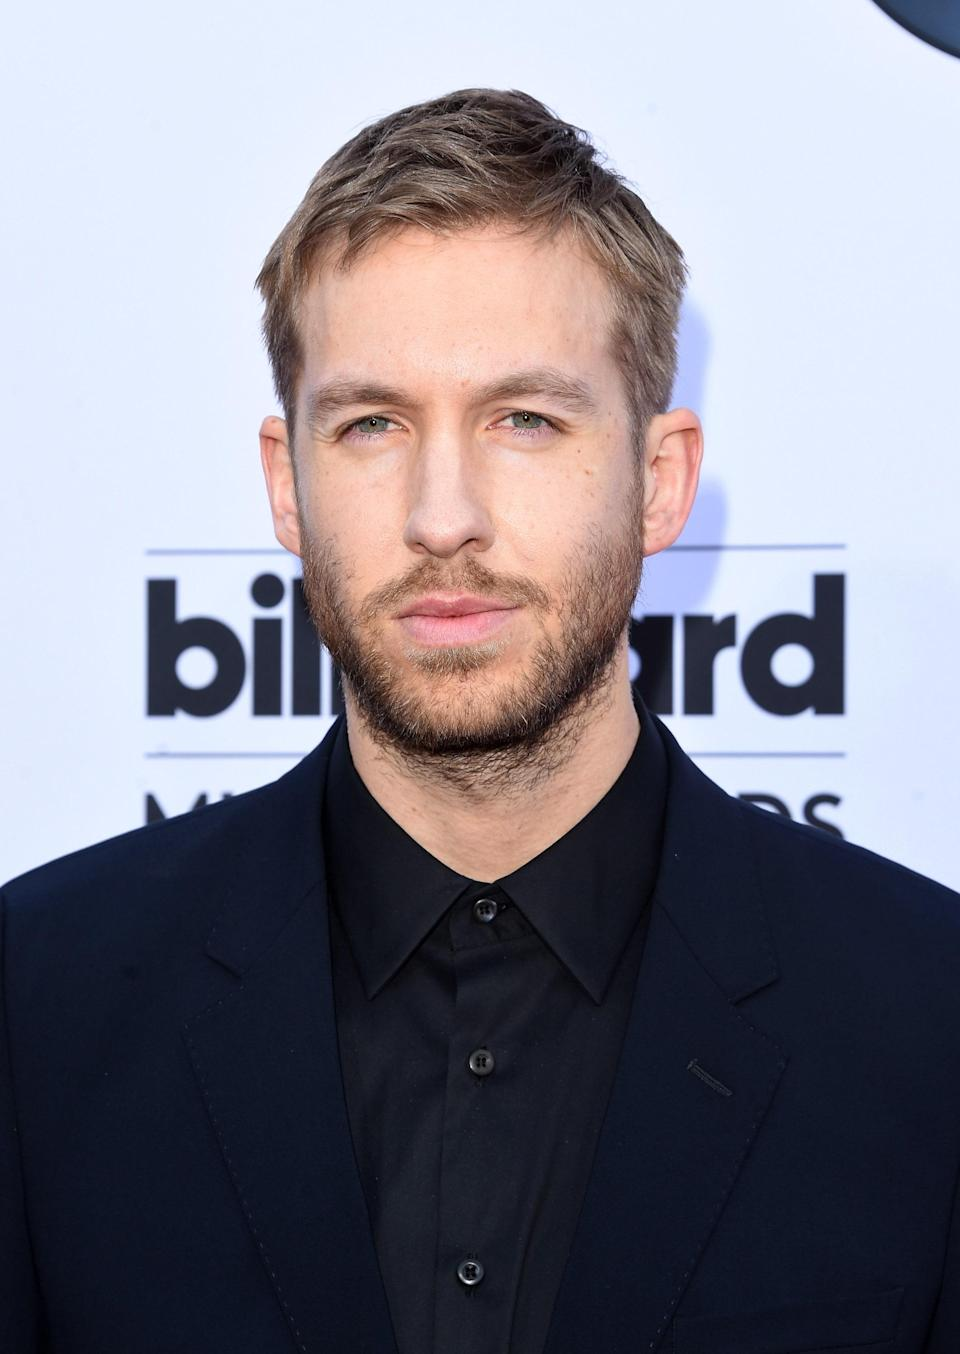 """Many were surprised to learn that Calvin Harris's real name is actually Adam Richard Wiles after his then girlfriend Taylor Swift <a href=""""https://www.glamour.com/story/taylor-swift-thanks-calvin-har?mbid=synd_yahoo_rss"""" rel=""""nofollow noopener"""" target=""""_blank"""" data-ylk=""""slk:referred to him as such"""" class=""""link rapid-noclick-resp"""">referred to him as such</a> while accepting her Female Artist of the Year win at the iHeartRadio Awards in 2016. But in early 2020, he <a href=""""https://www.dailyrecord.co.uk/news/scottish-news/scots-dj-calvin-harris-changing-21355688"""" rel=""""nofollow noopener"""" target=""""_blank"""" data-ylk=""""slk:revealed"""" class=""""link rapid-noclick-resp"""">revealed</a> that he was considering changing his stage name again because of too much """"negativity"""" associated with the Harris moniker."""